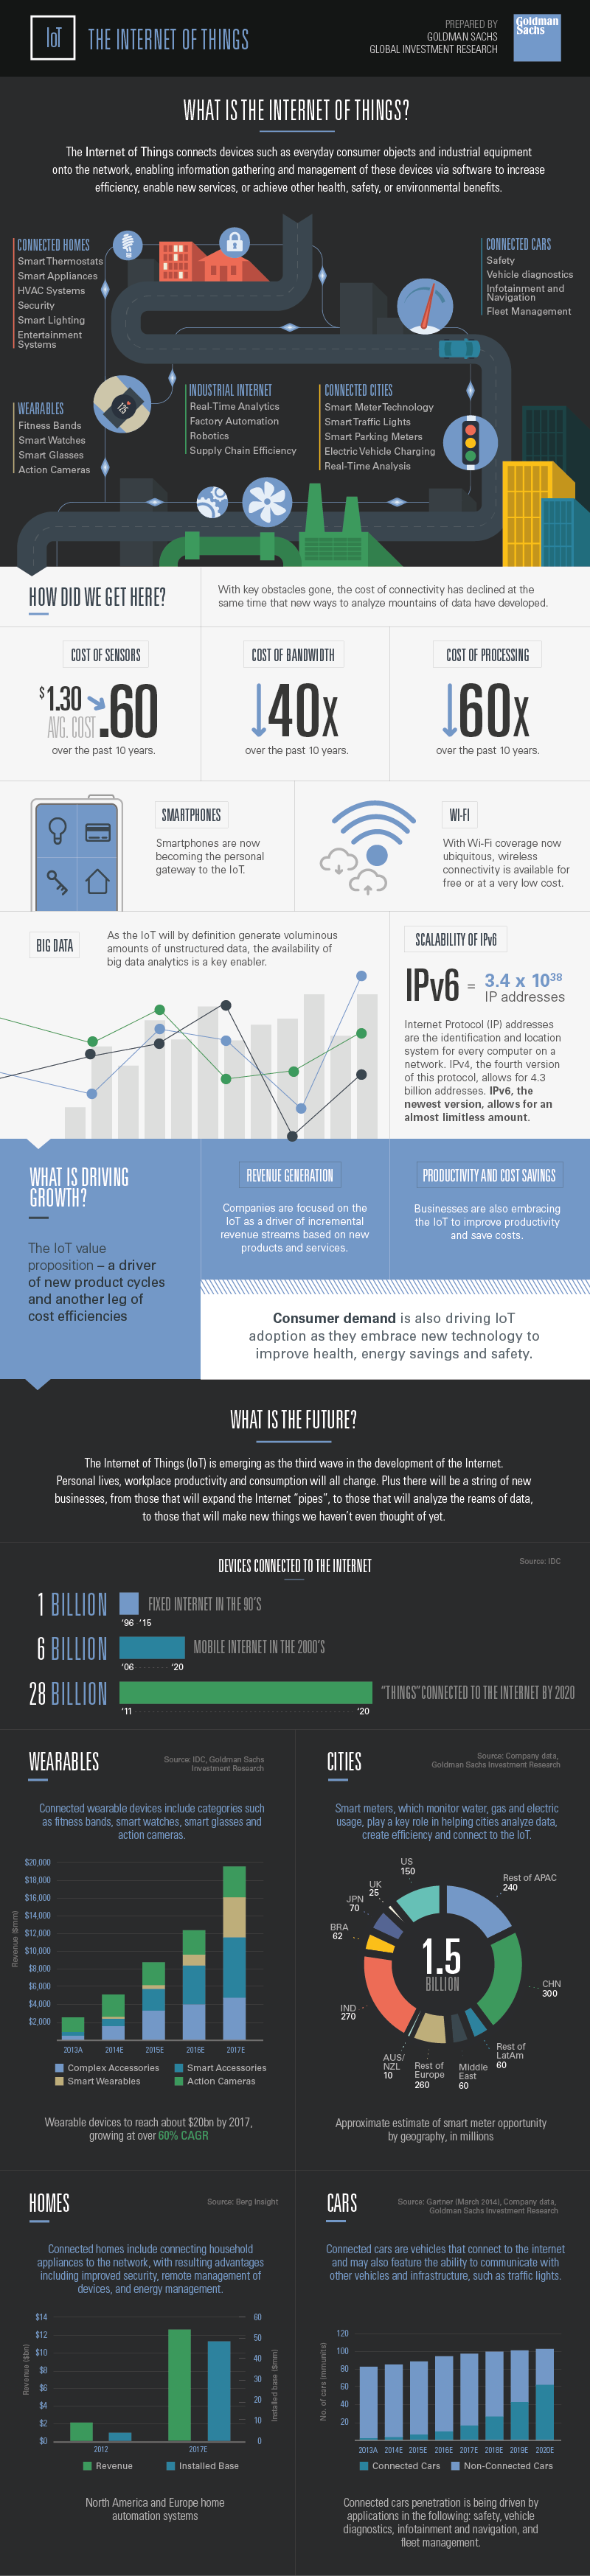 Infographic: What is the Internet of Things?